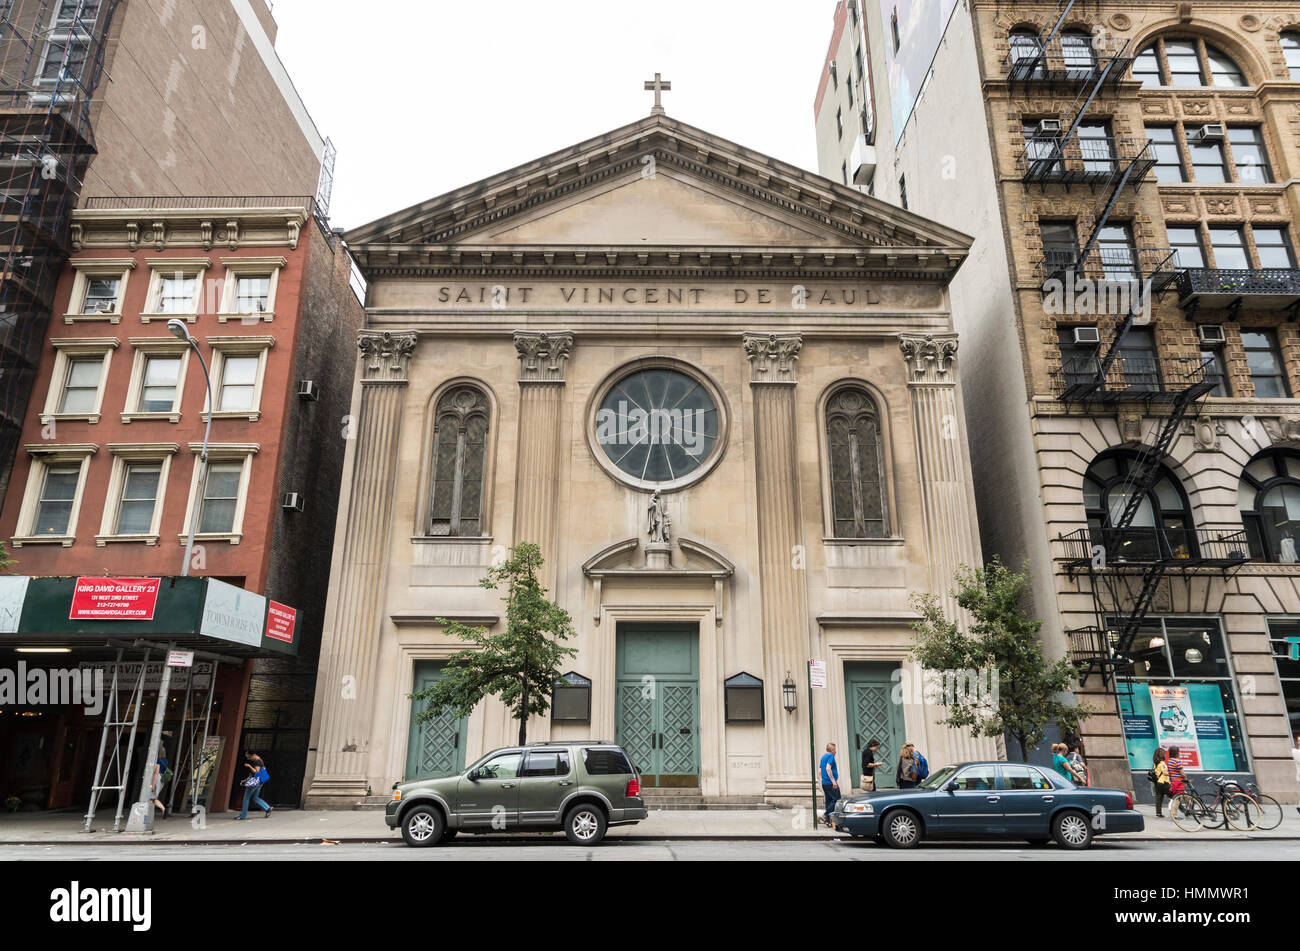 Exterior facade of the Saint Vincent De Paul church in Manhattan, New York, USA - Stock Image